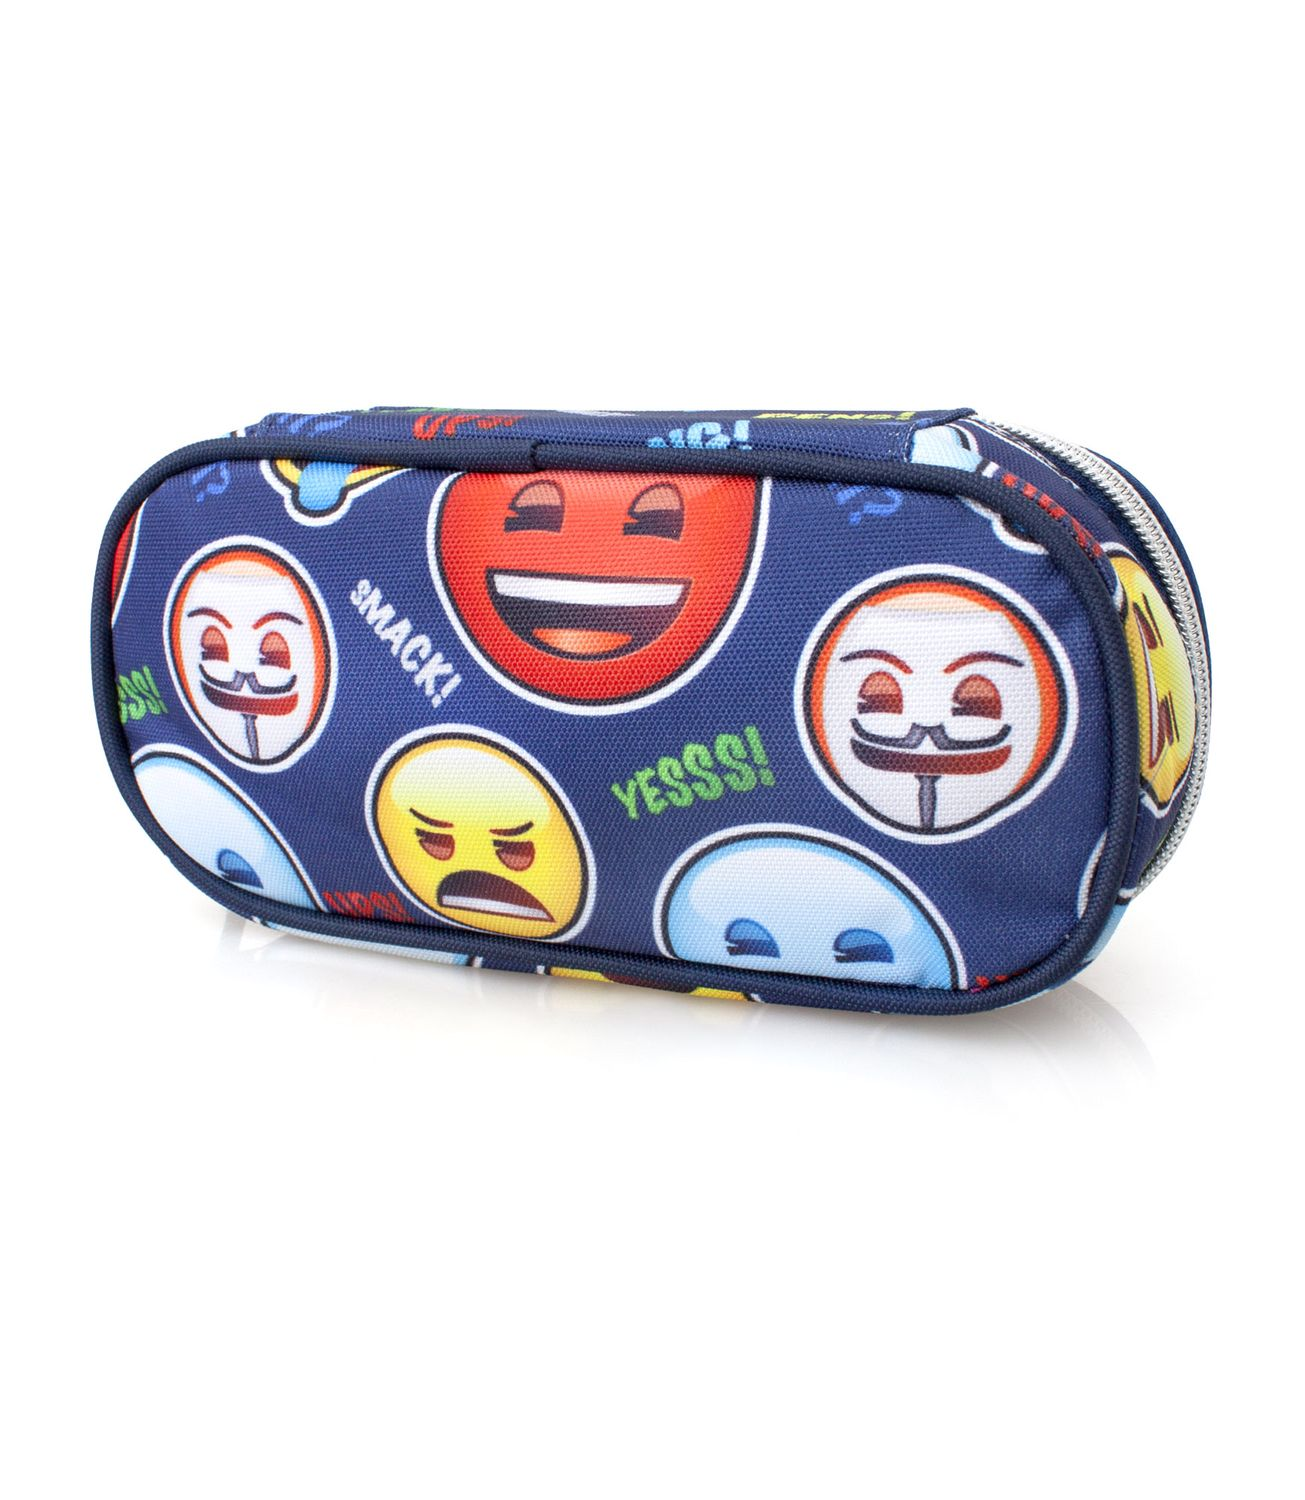 Oval Pencil Case Blue MAD EMOJI Official – image 2